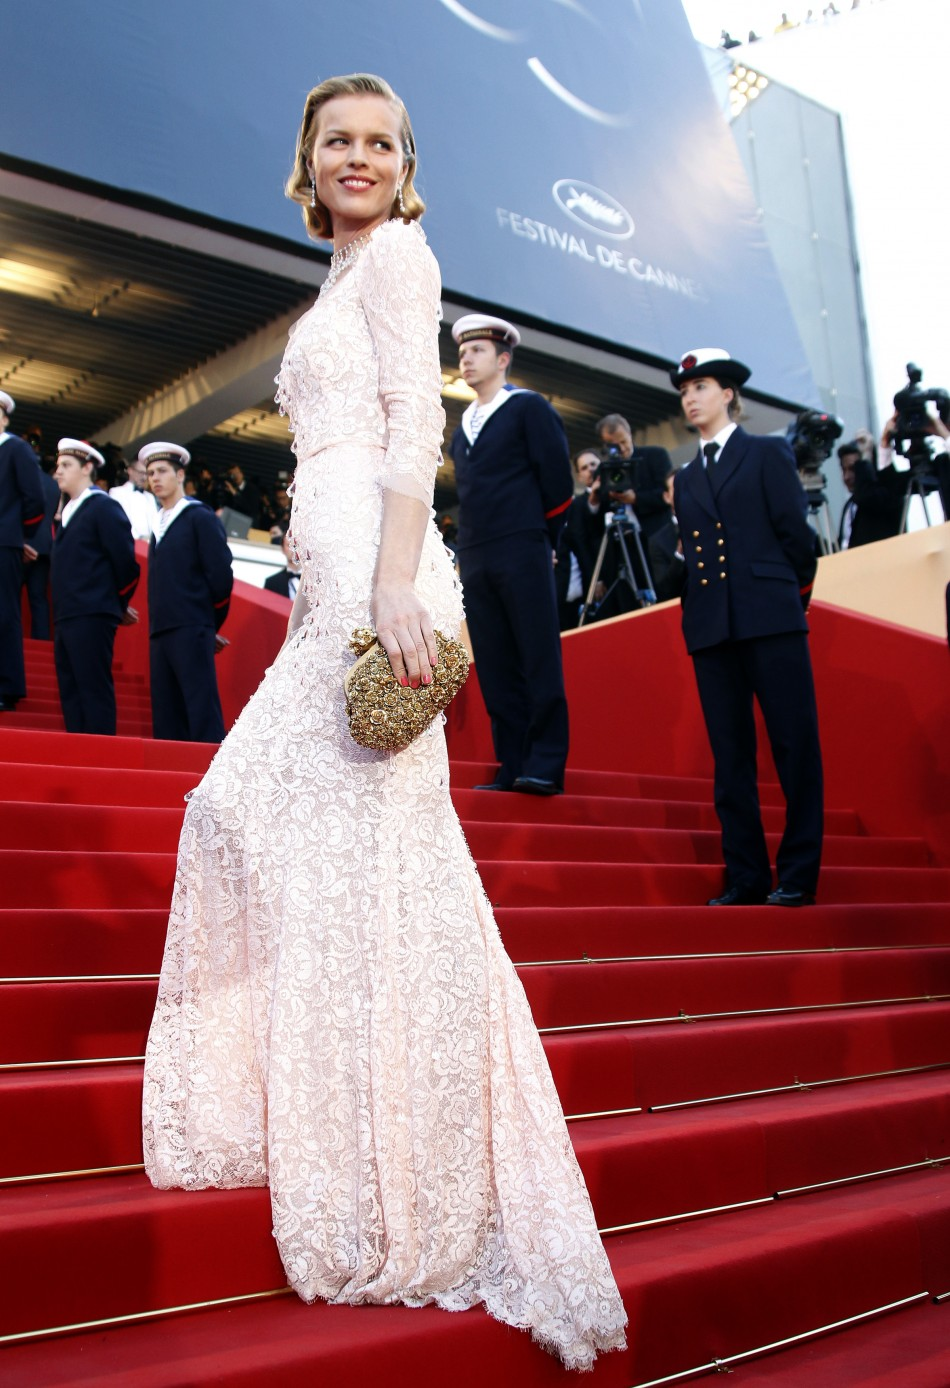 Czech model Herzigova arrives on the red carpet for the screening of the film Moonrise Kingdom in competition at the 65th Cannes Film Festival